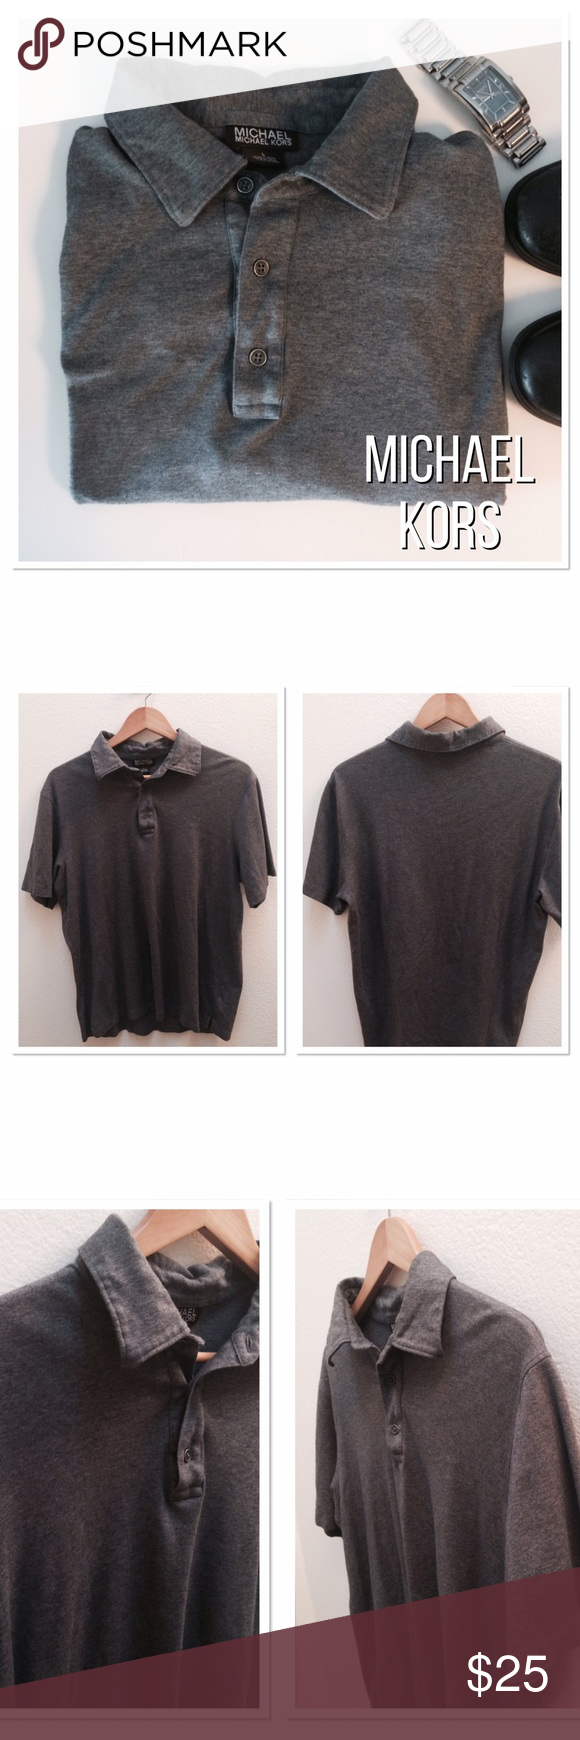 Michael Kors Polo Shirt grey 100% Cotton! Super soft! Length 26in, Width 40in, sleeves 14in. In great condition. No flaws!!!! Size says L but I think it's more M. See measurements! MICHAEL Michael Kors Shirts Polos